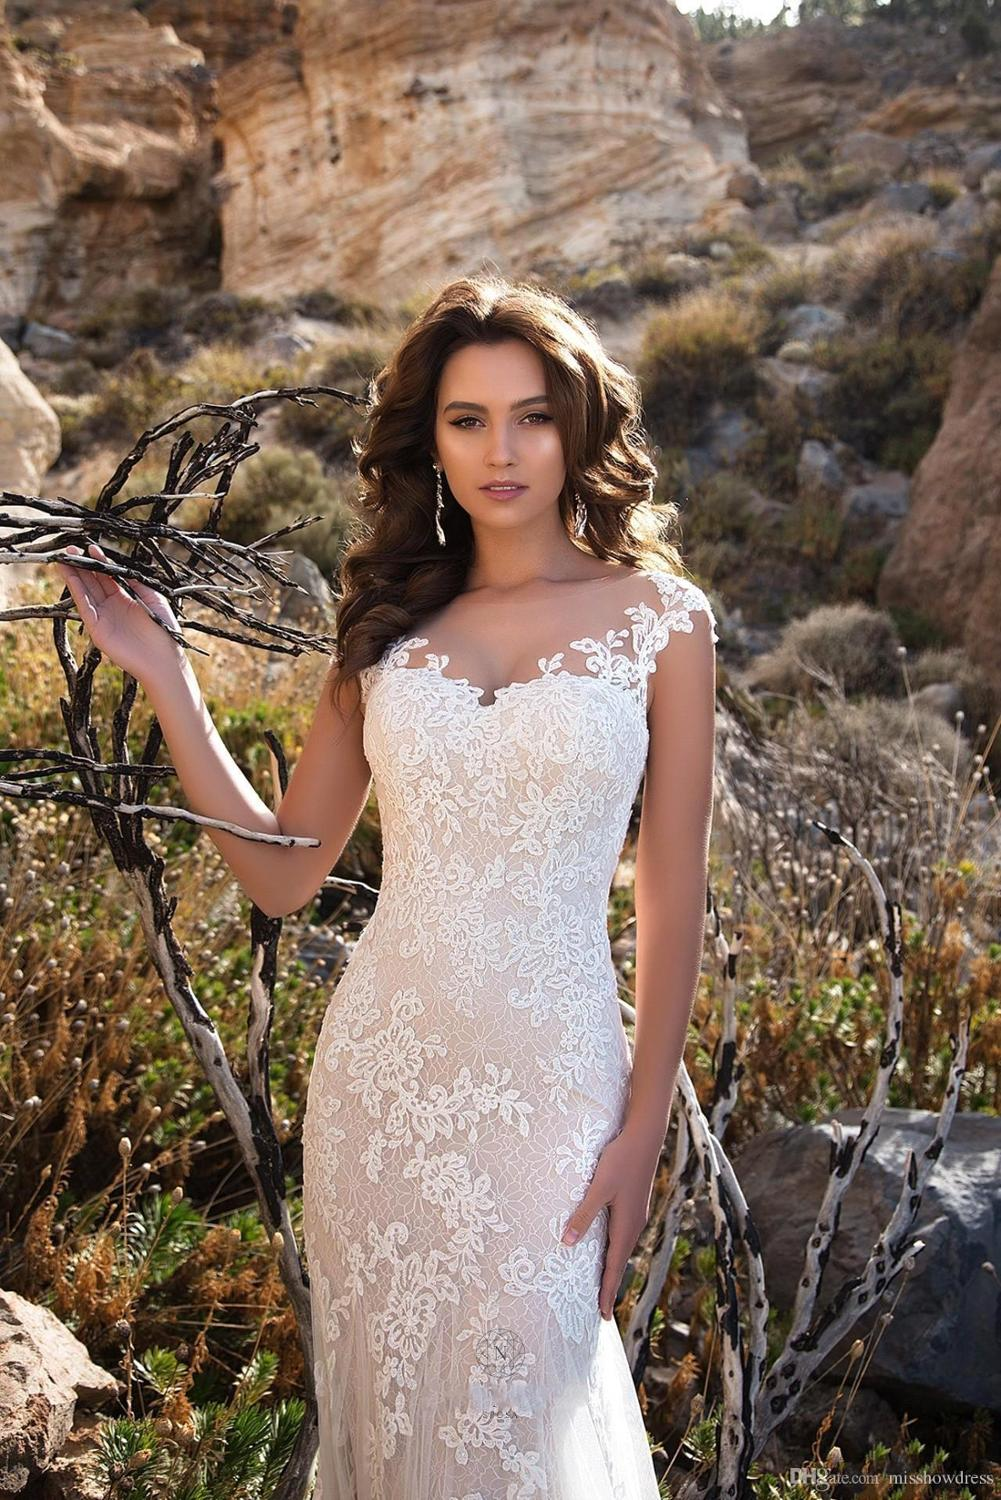 Elegant Lace Mermaid Wedding Dresses Sheer Cap Sleeves Lace Applique Sweep Train Wedding Bridal Gowns With Buttons